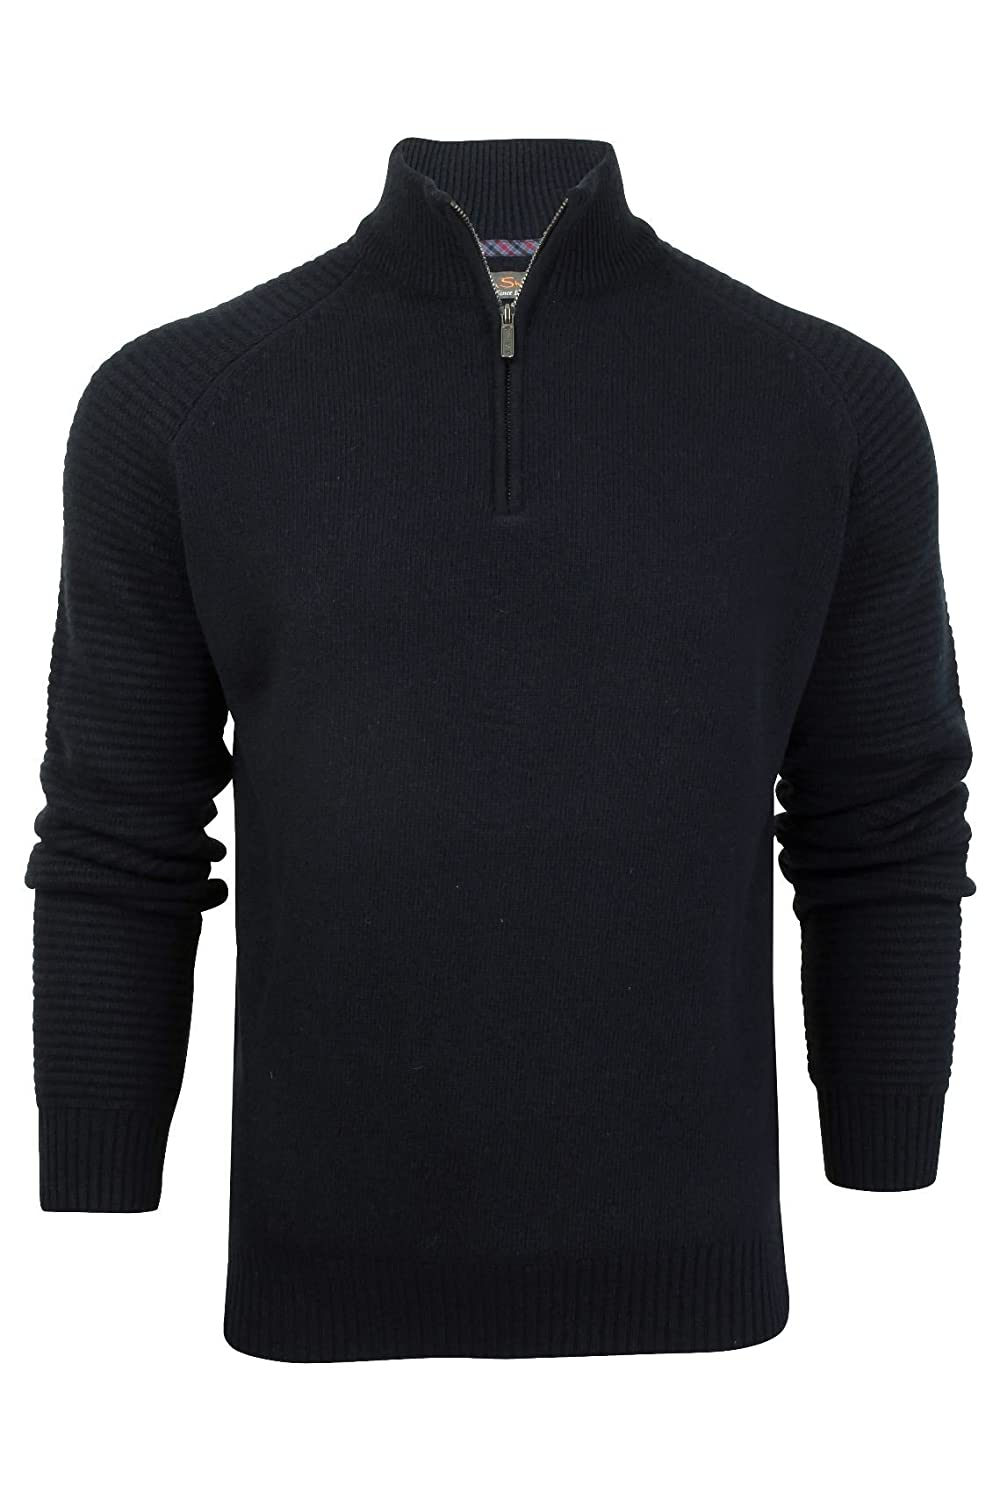 Ben Sherman Mens Quarter Zip Funnel Neck Textured Knit in Navy- Funnel Neck- Zip